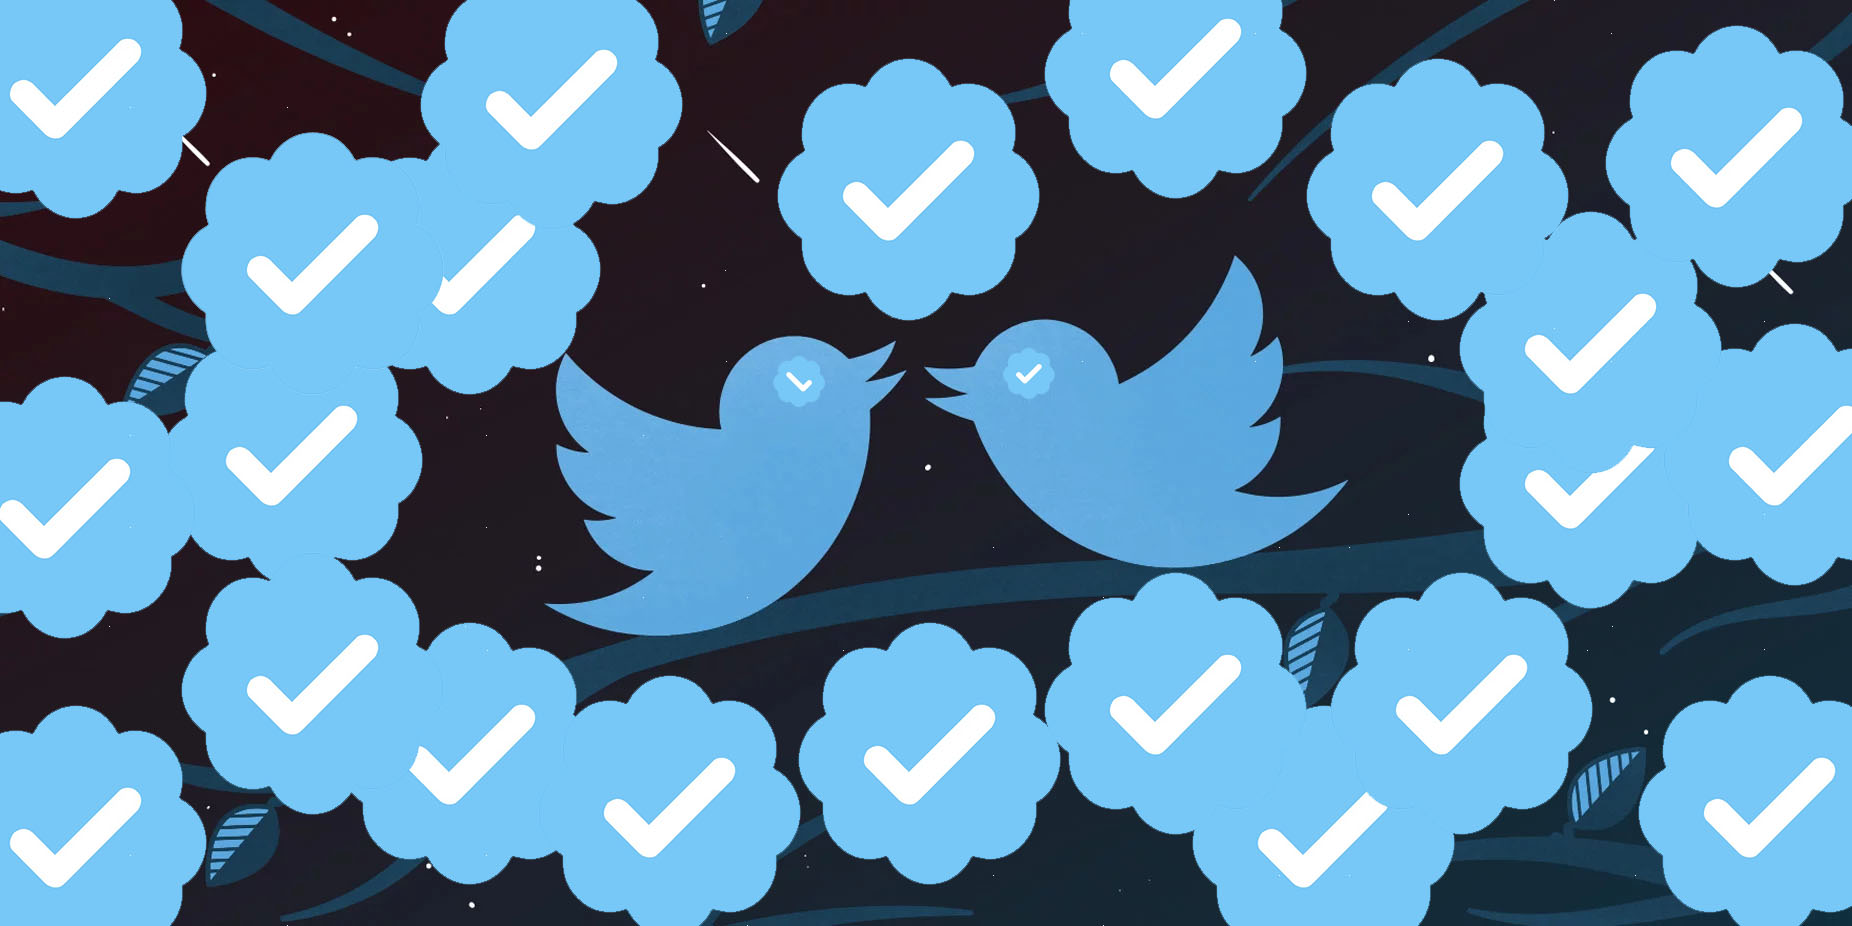 How to get verified on Twitter - even if you're NOT famous